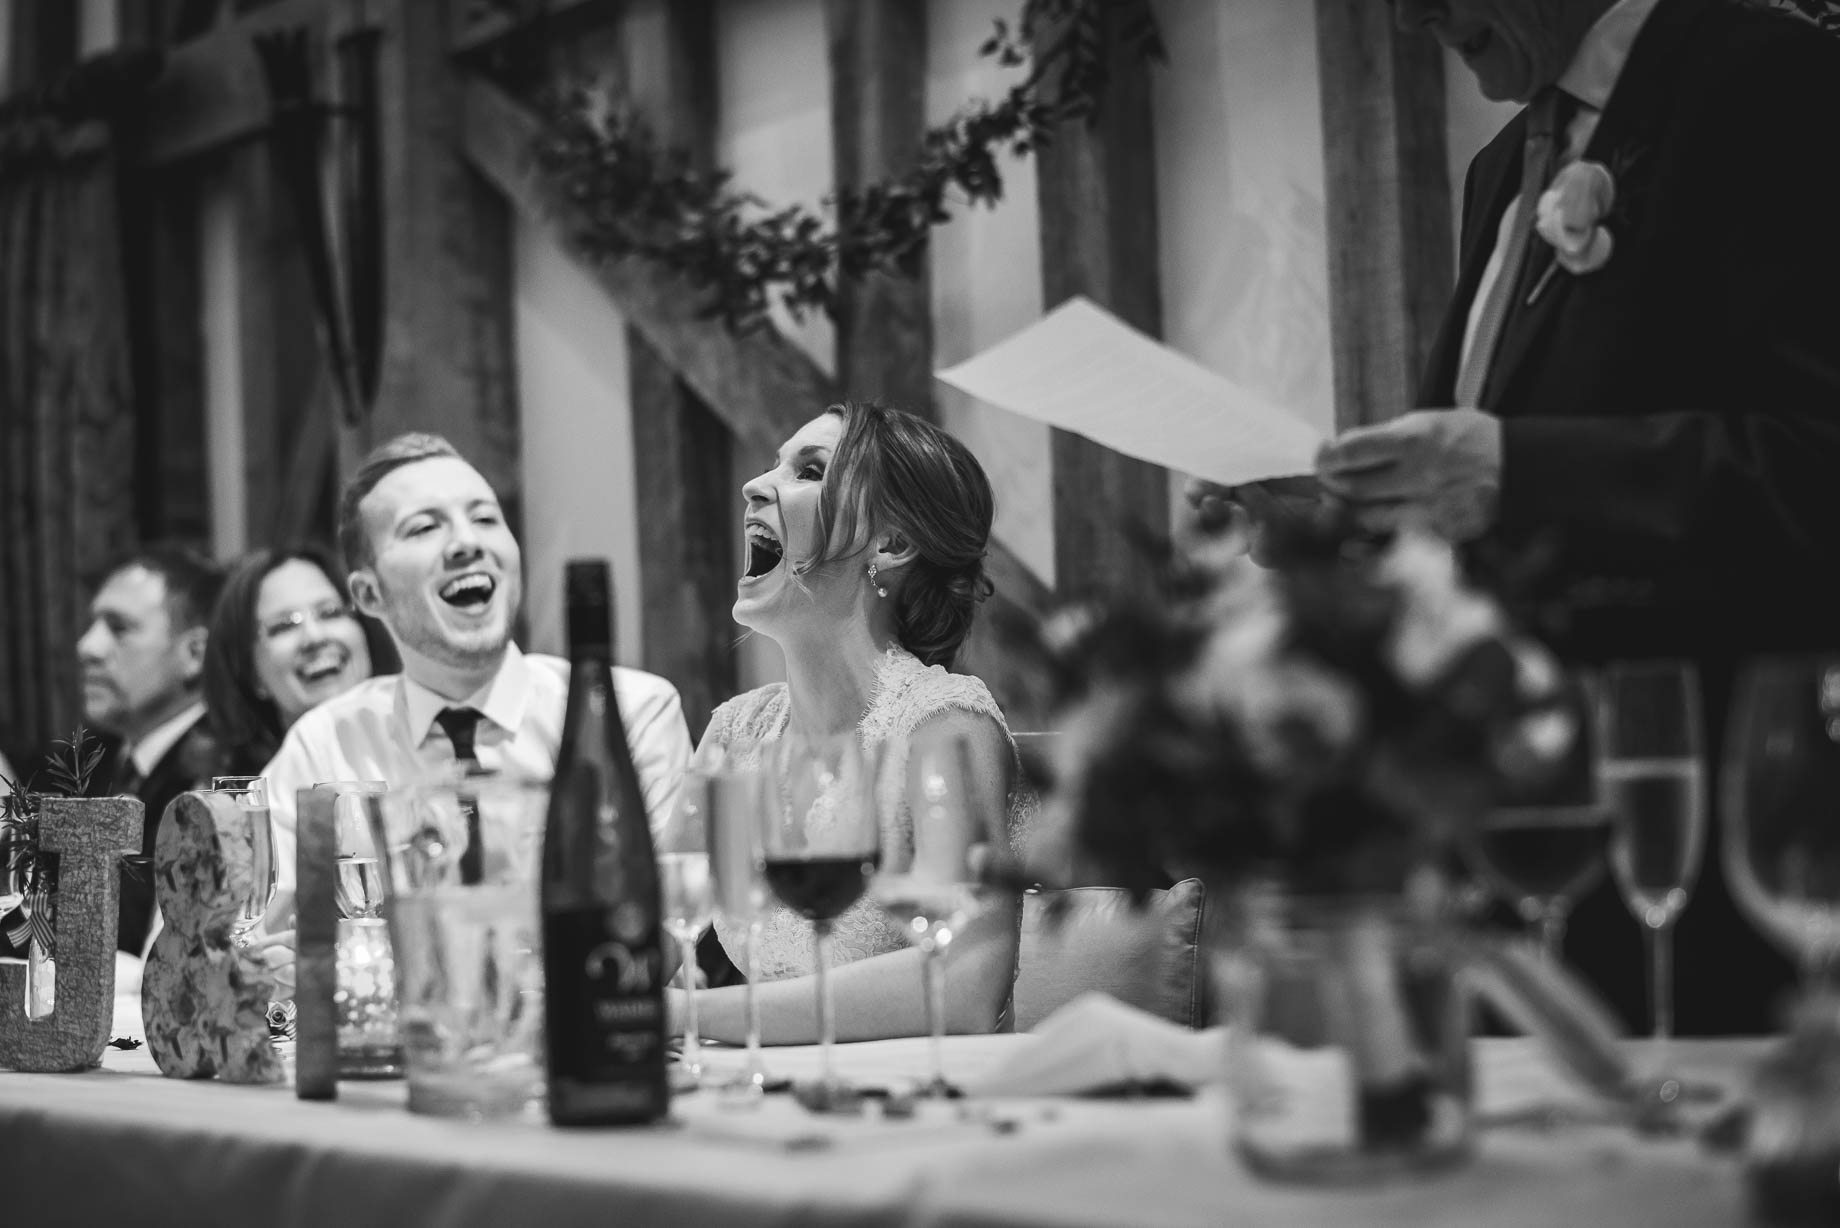 Surrey Wedding Photography by Guy Collier - Becca and James (127 of 145)